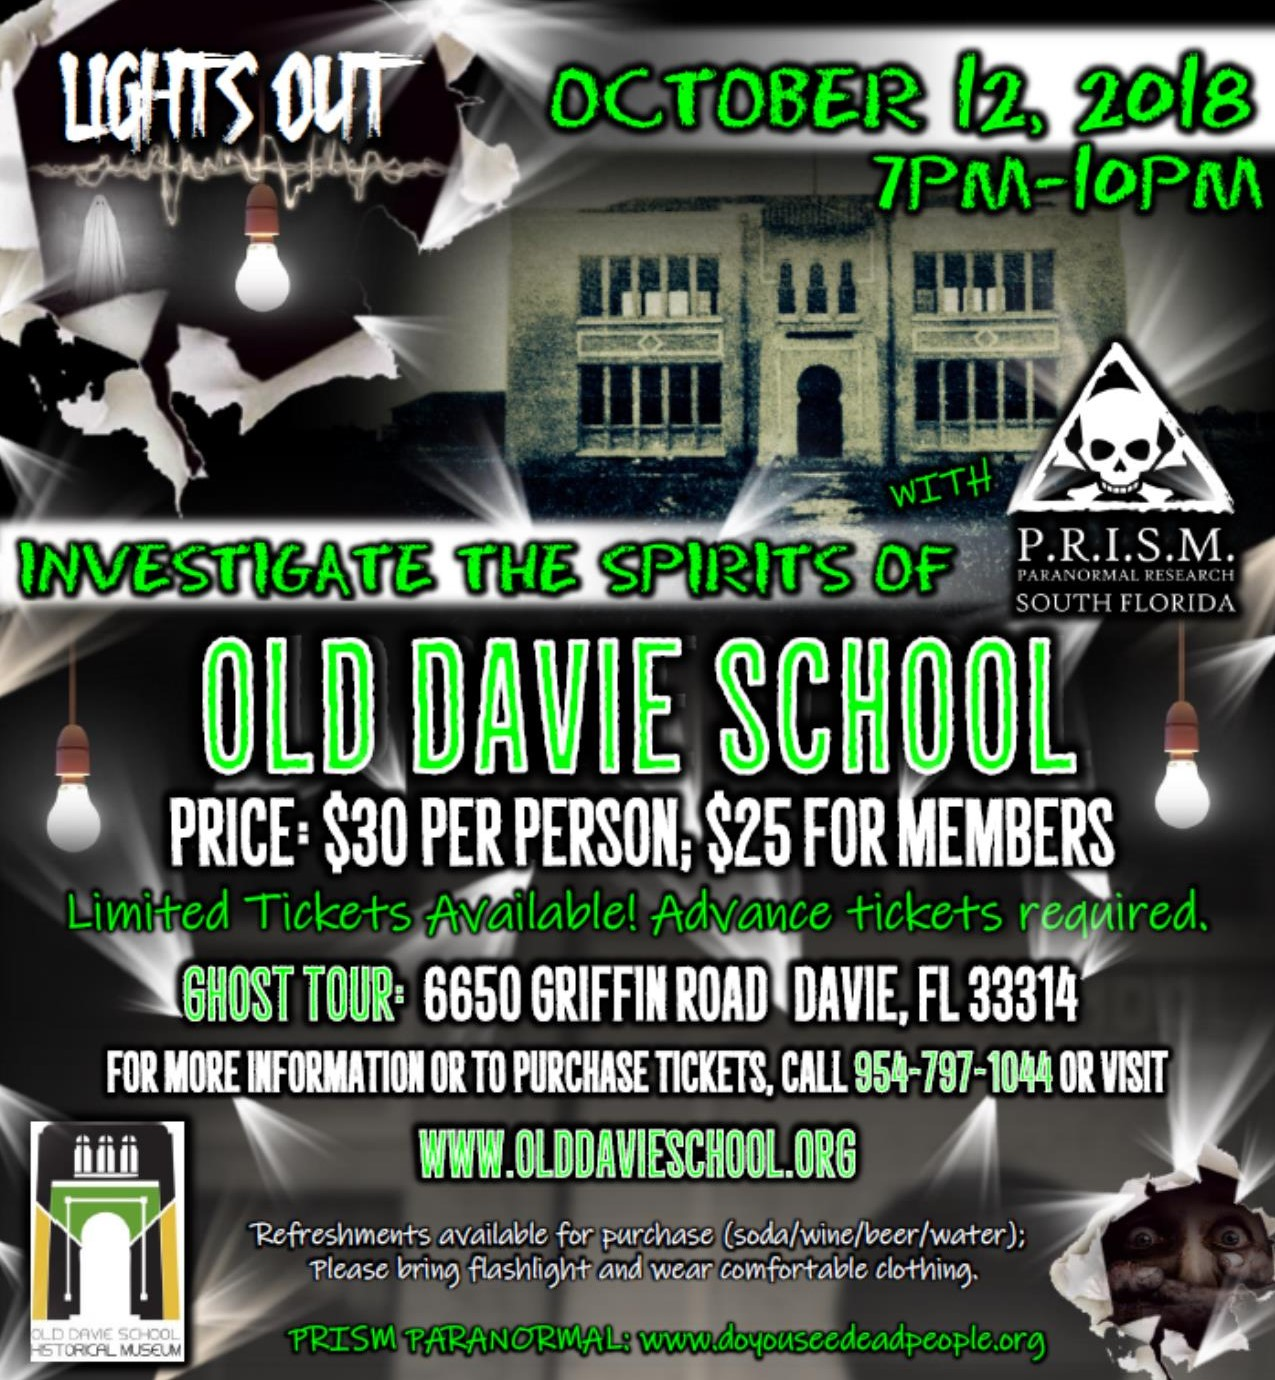 Ghost Tour at Old Davie School presented by Old Davie School